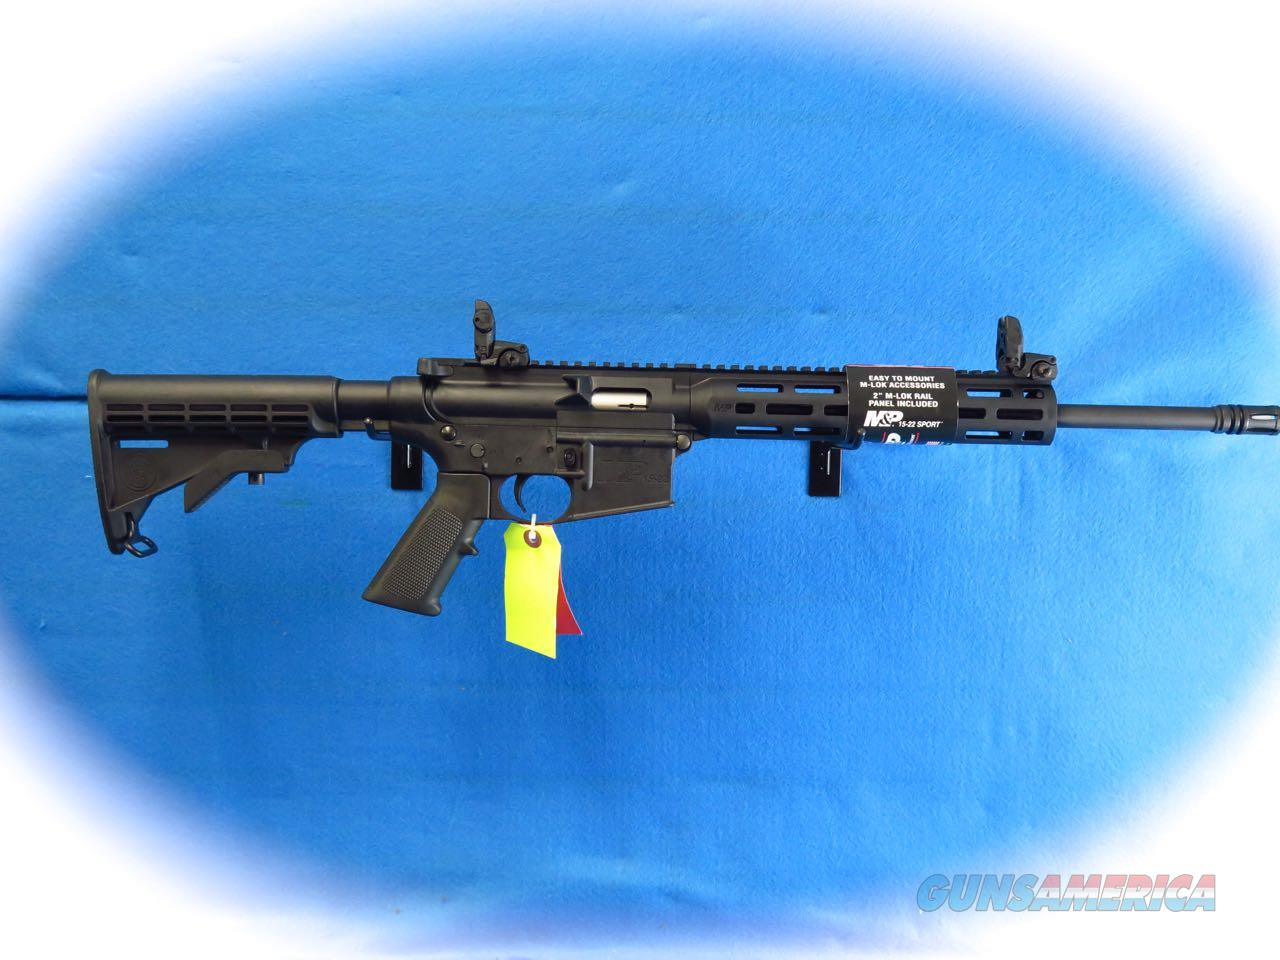 Smith & Wesson M&P 15-22 Sport .22 LR Rifle SKU 10208 **New**  Guns > Rifles > Smith & Wesson Rifles > M&P